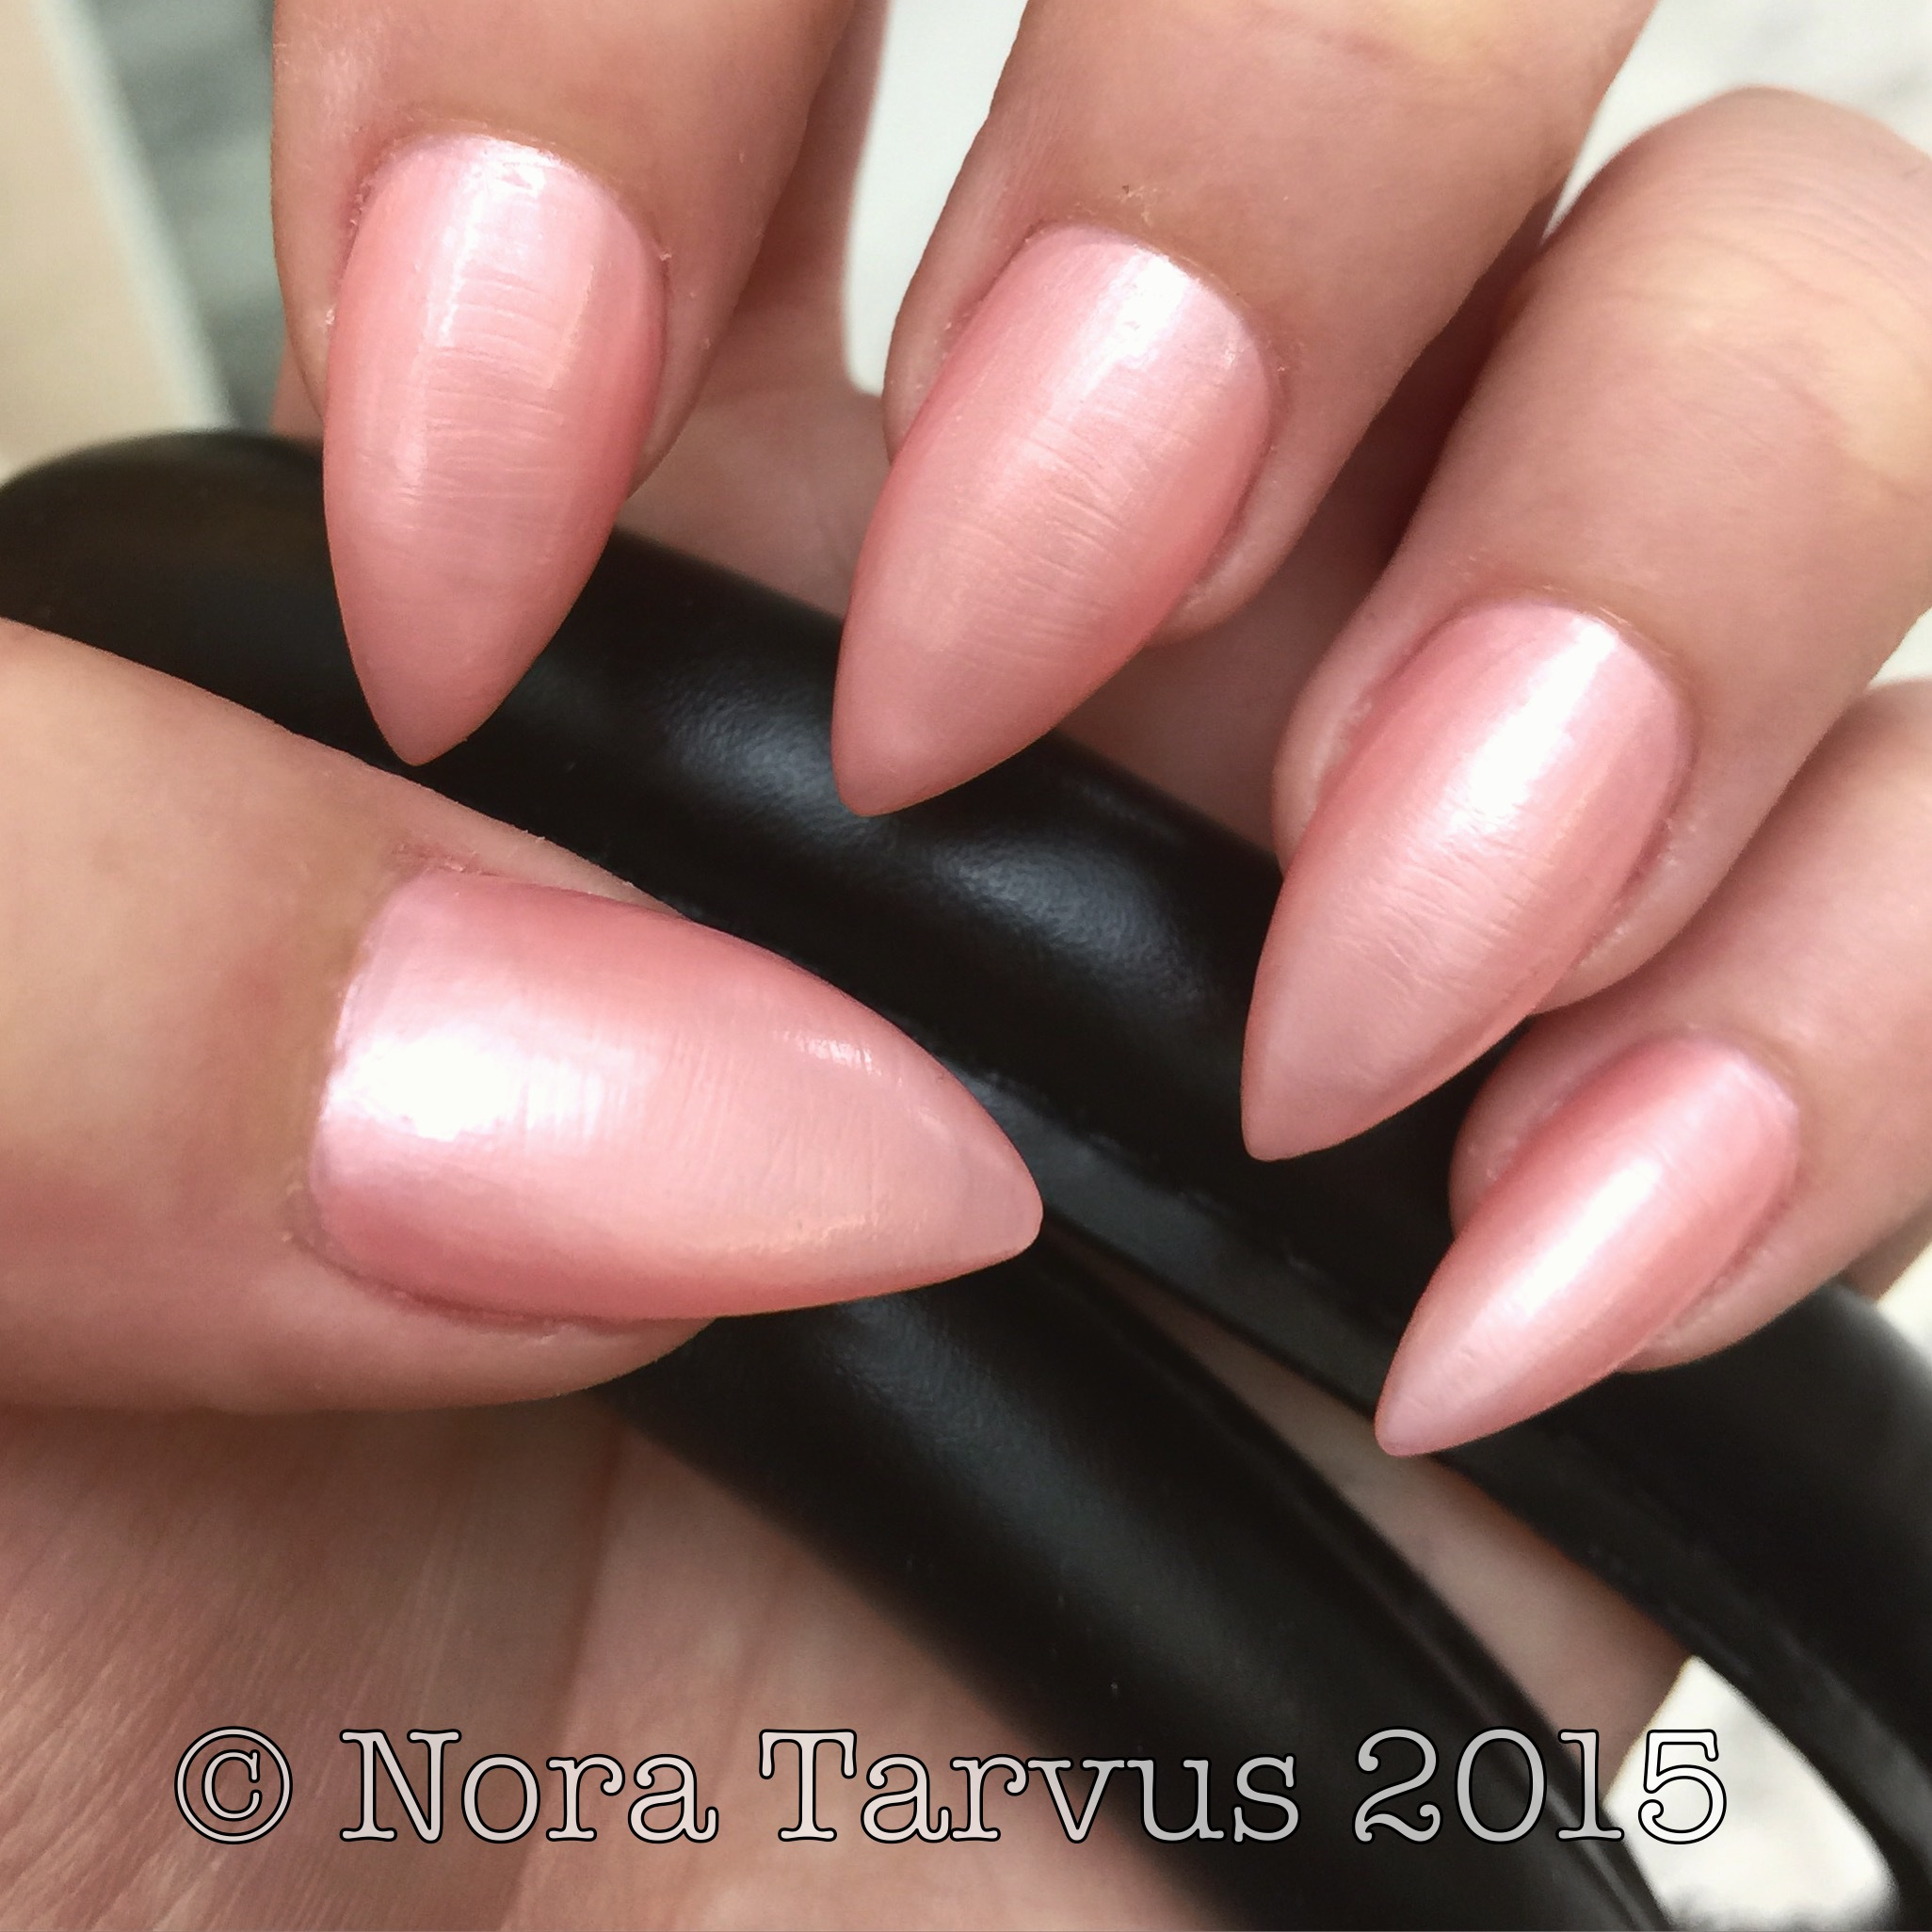 July Nails - Pink, Sharp & Long - Dreamer Achiever